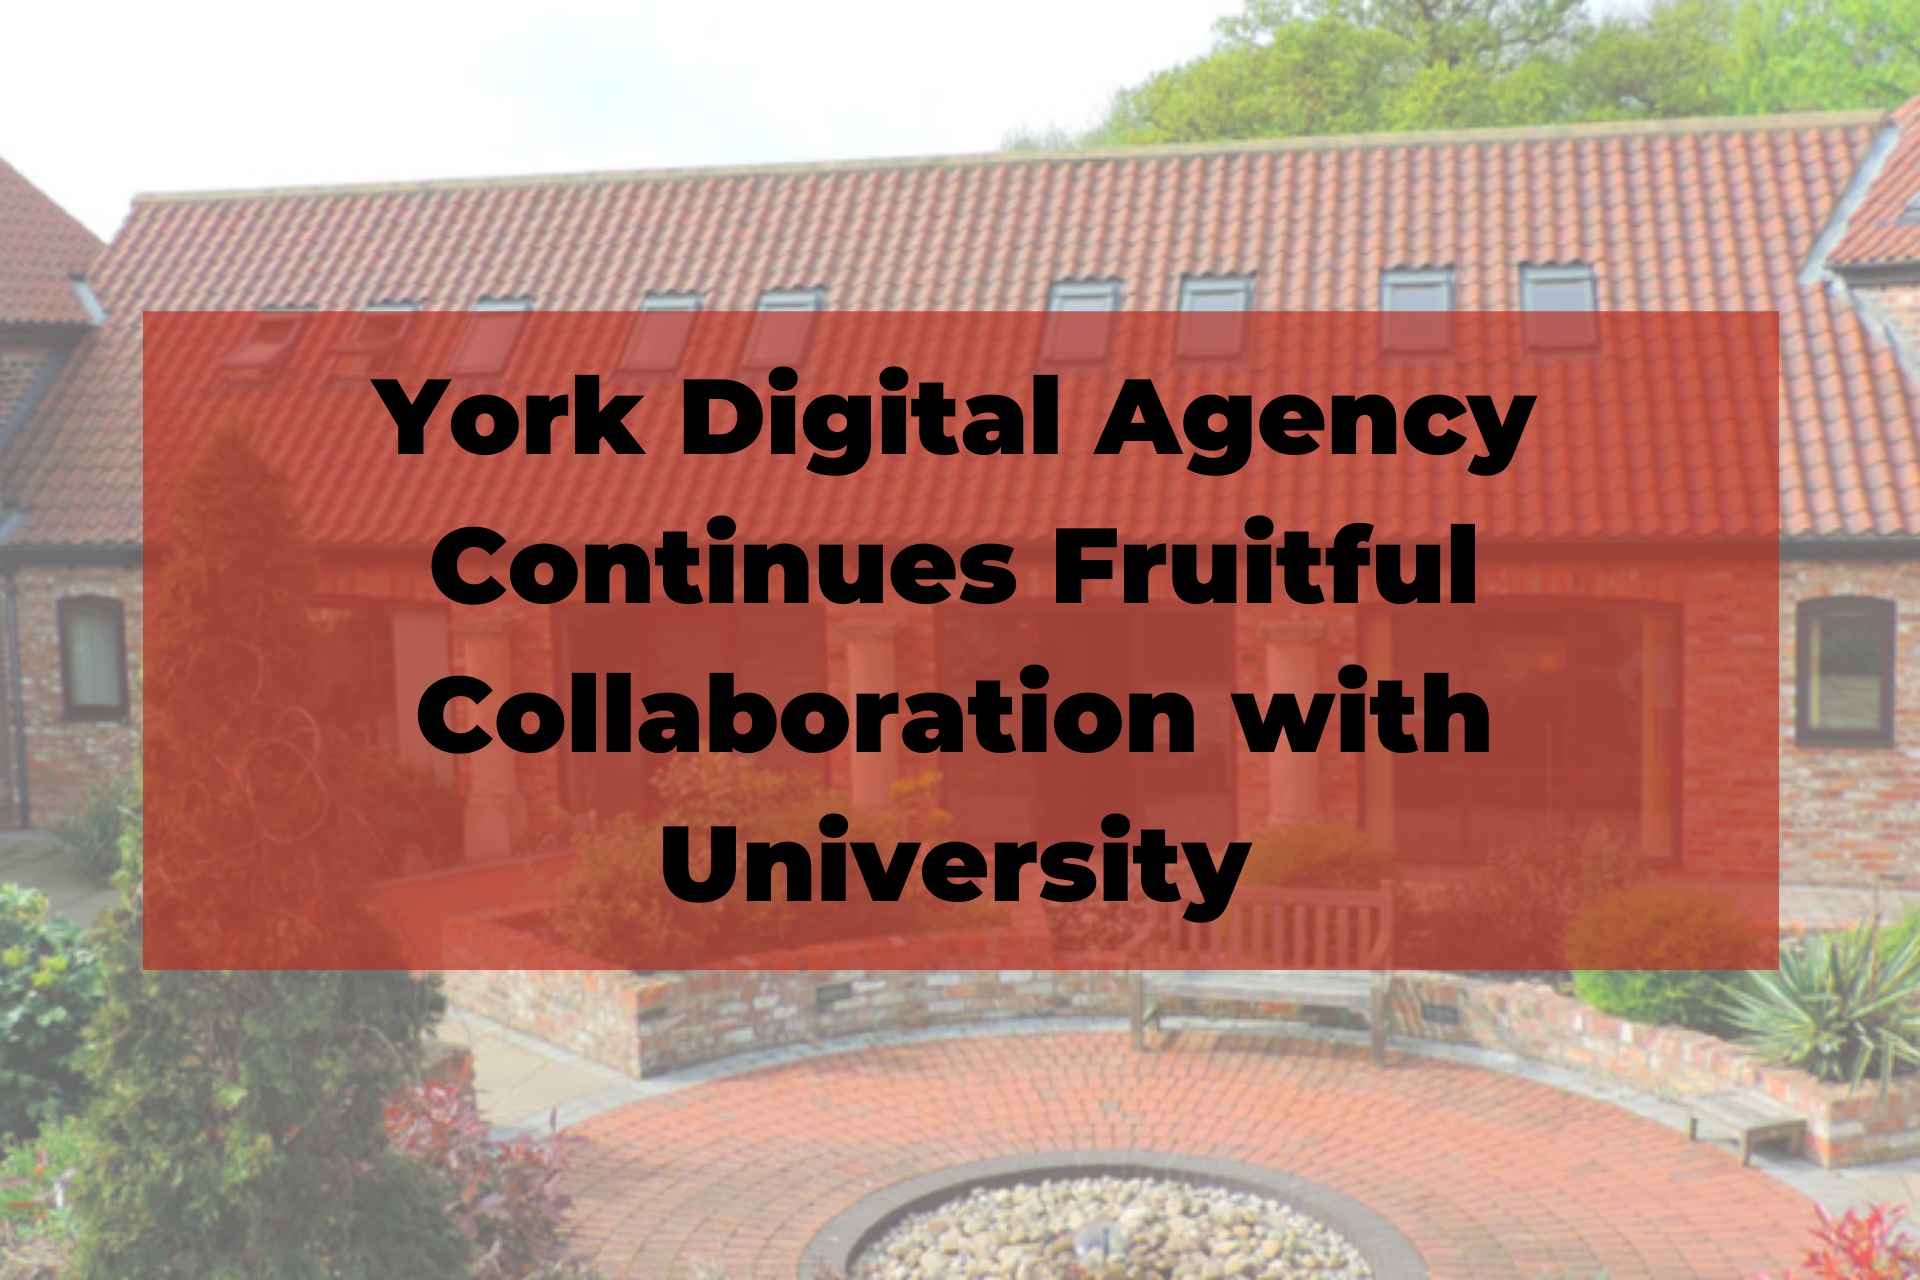 York Digital Agency Continues Fruitful Collaboration with University